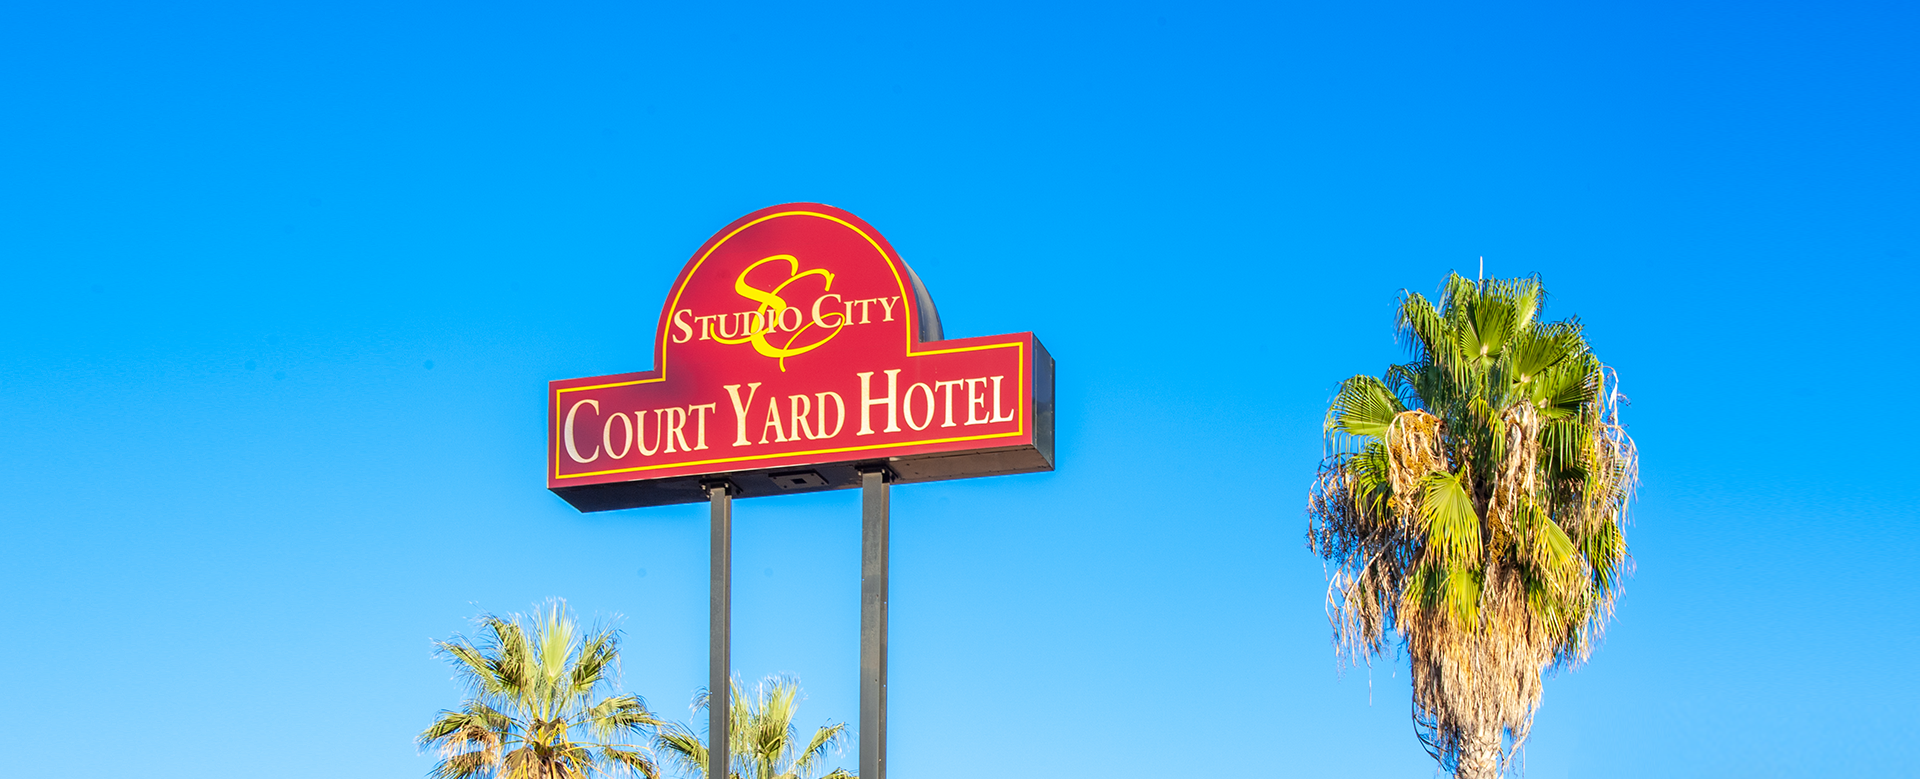 studio city court yard exterior signage